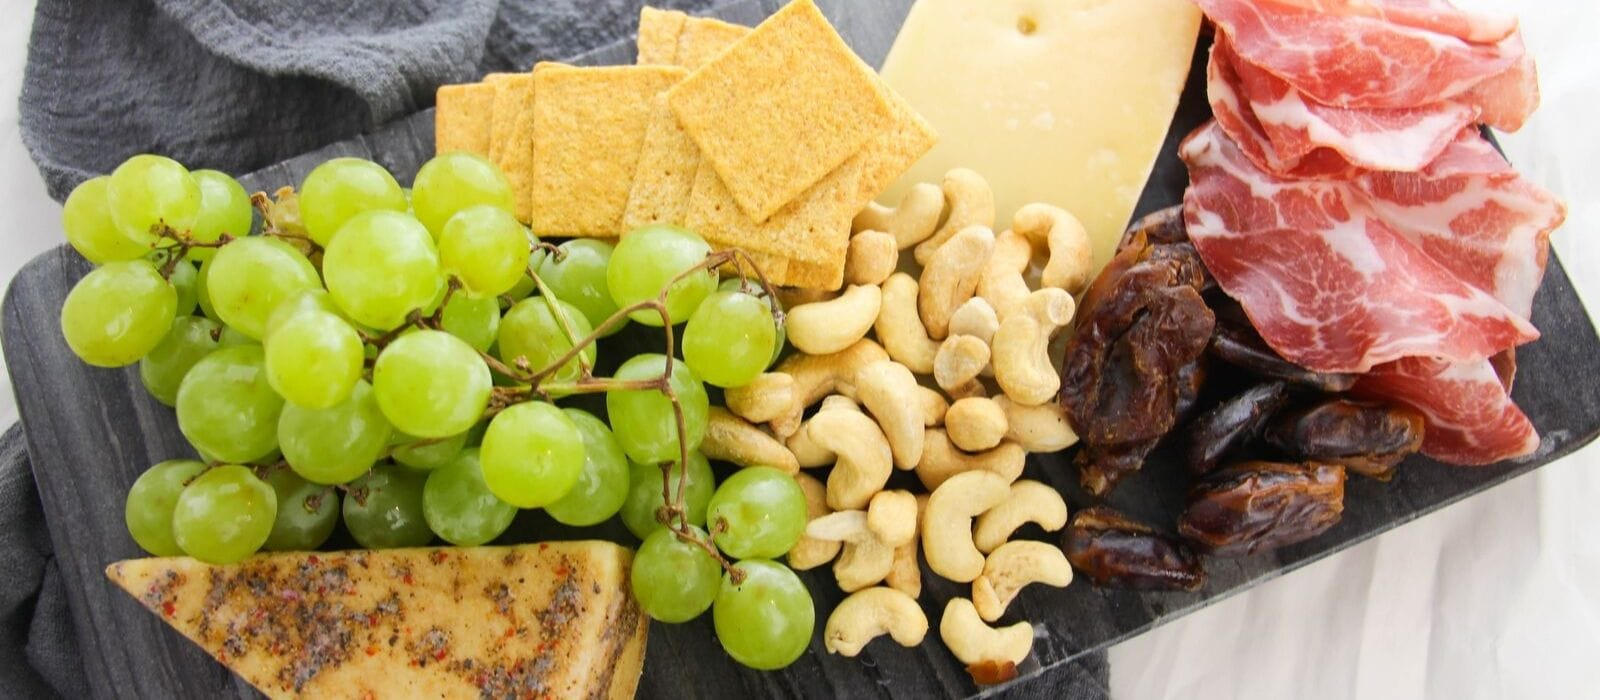 Delightful & Easy Mini Cheeseboard| Cheeseboard Ideas| Easy Cheeseboard Ideas| How to Make a Cheeseboard| Cheeseboard for Wine Night| Easy Party Cheeseboard| #cheeseboard #wine #cheeseandwine #snacks #snacktray